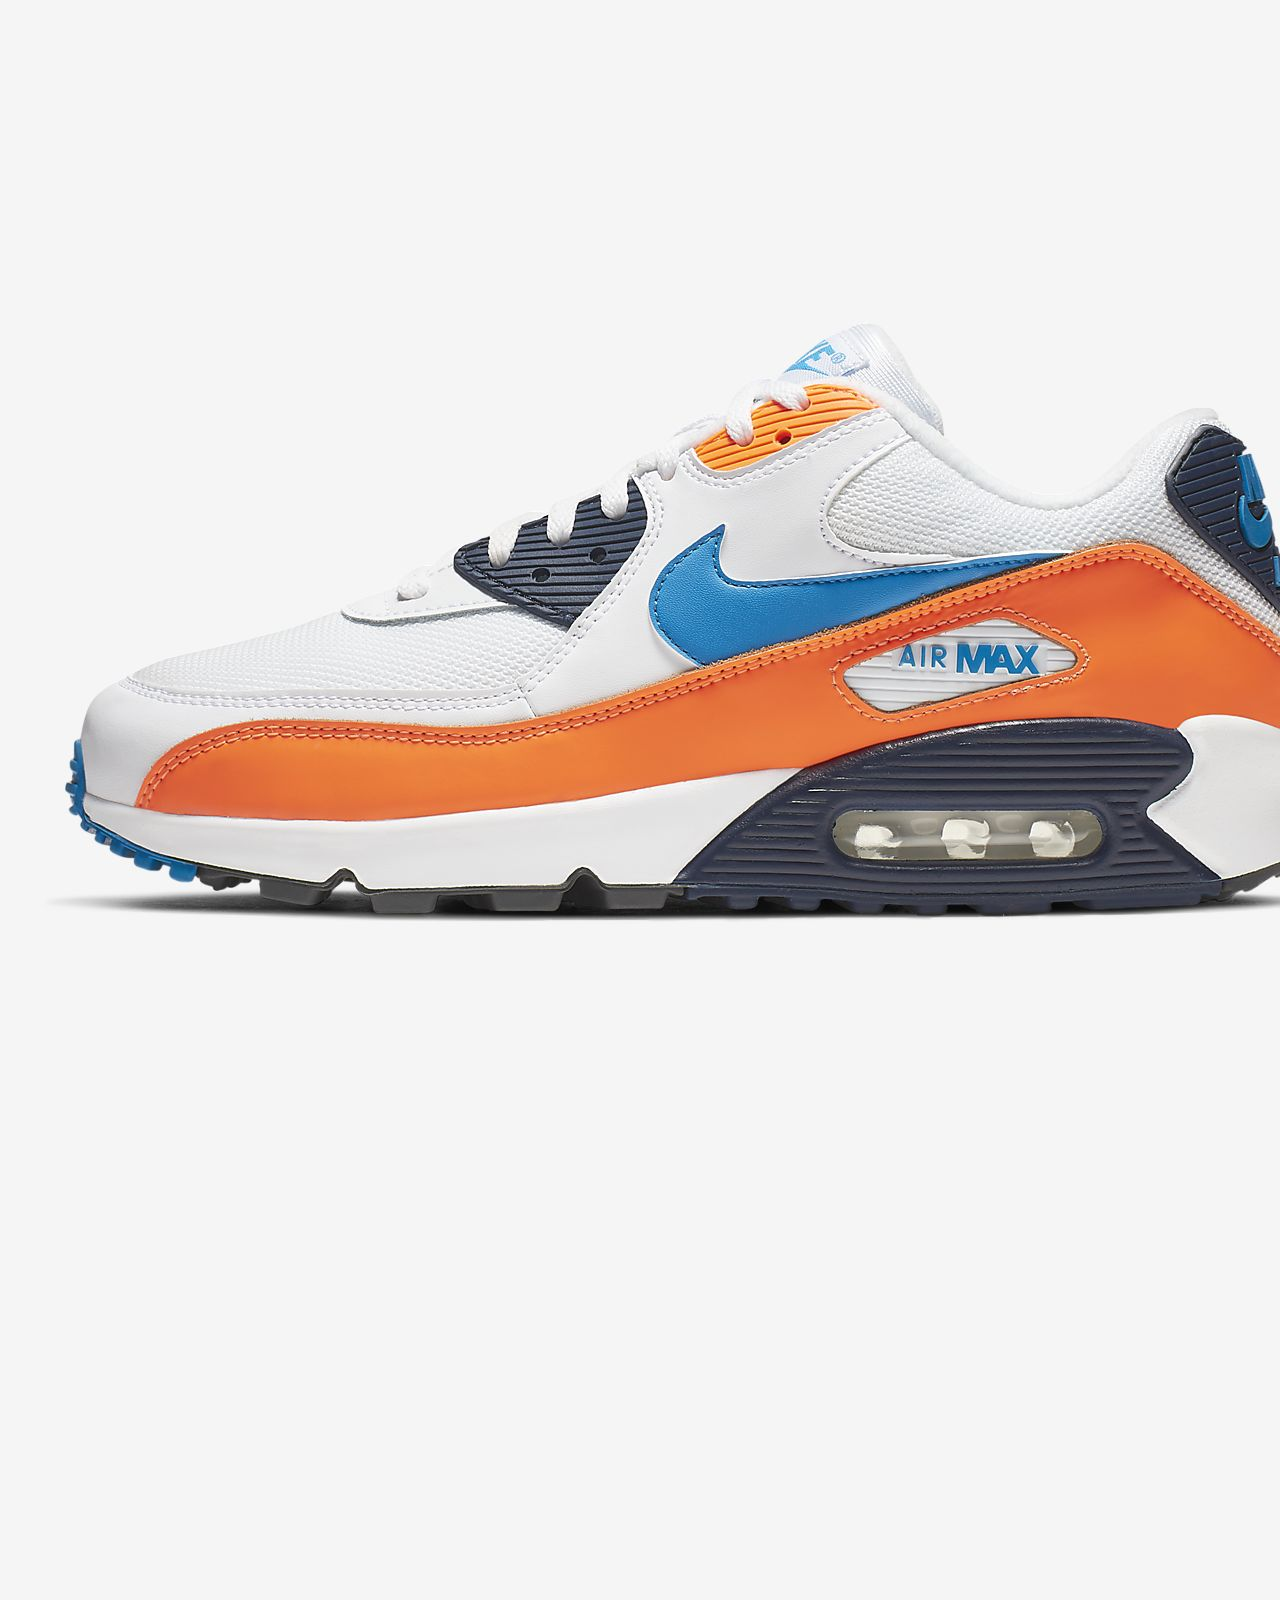 9307f6494b0605 Low Resolution Nike Air Max 90 Essential Men s Shoe Nike Air Max 90  Essential Men s Shoe